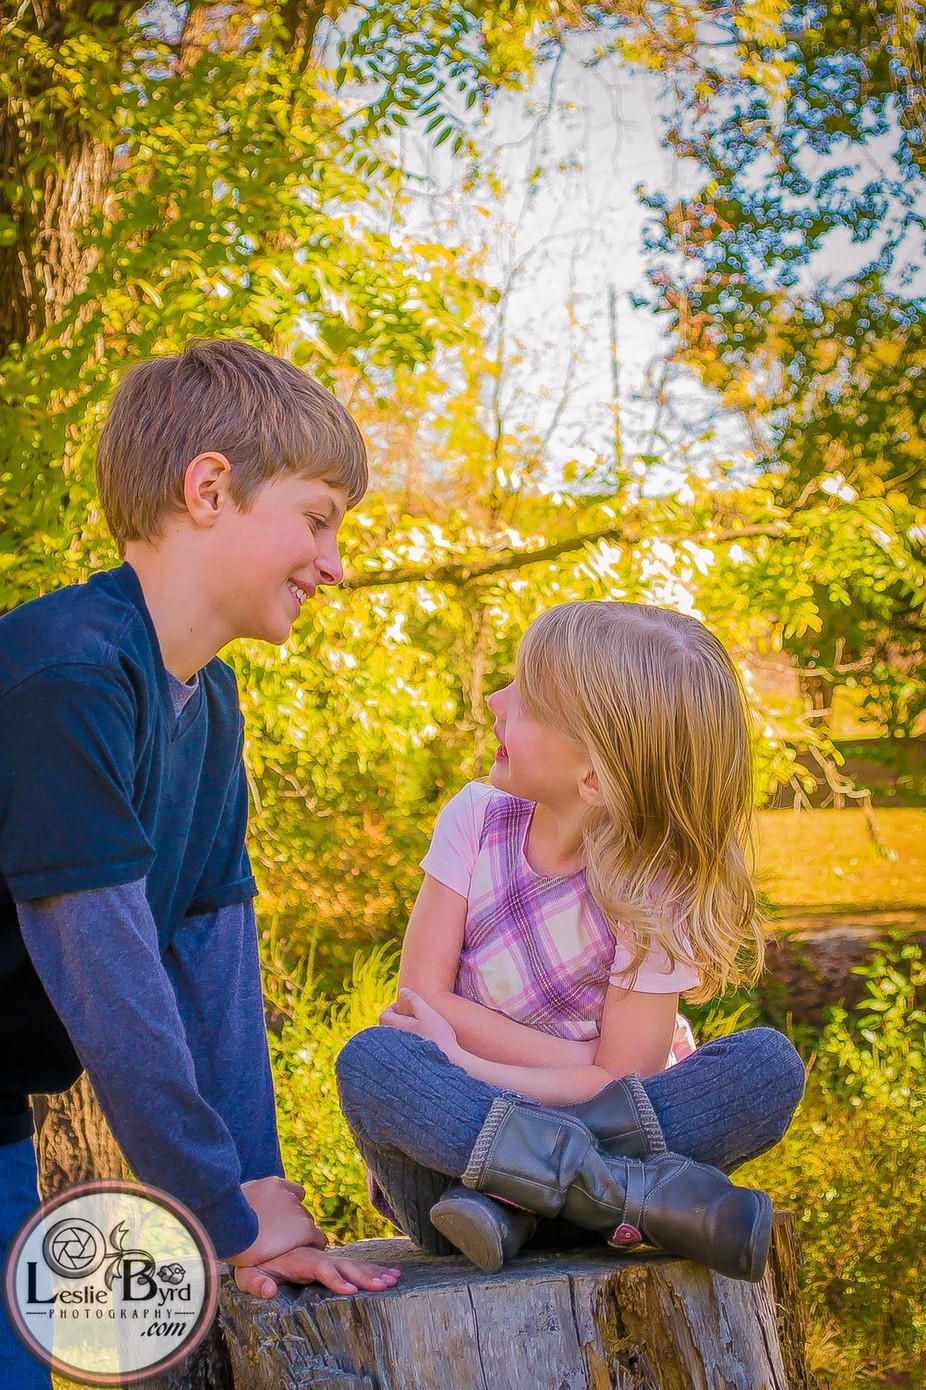 A sweet image captured of my children during an Autumn outside portrait session.